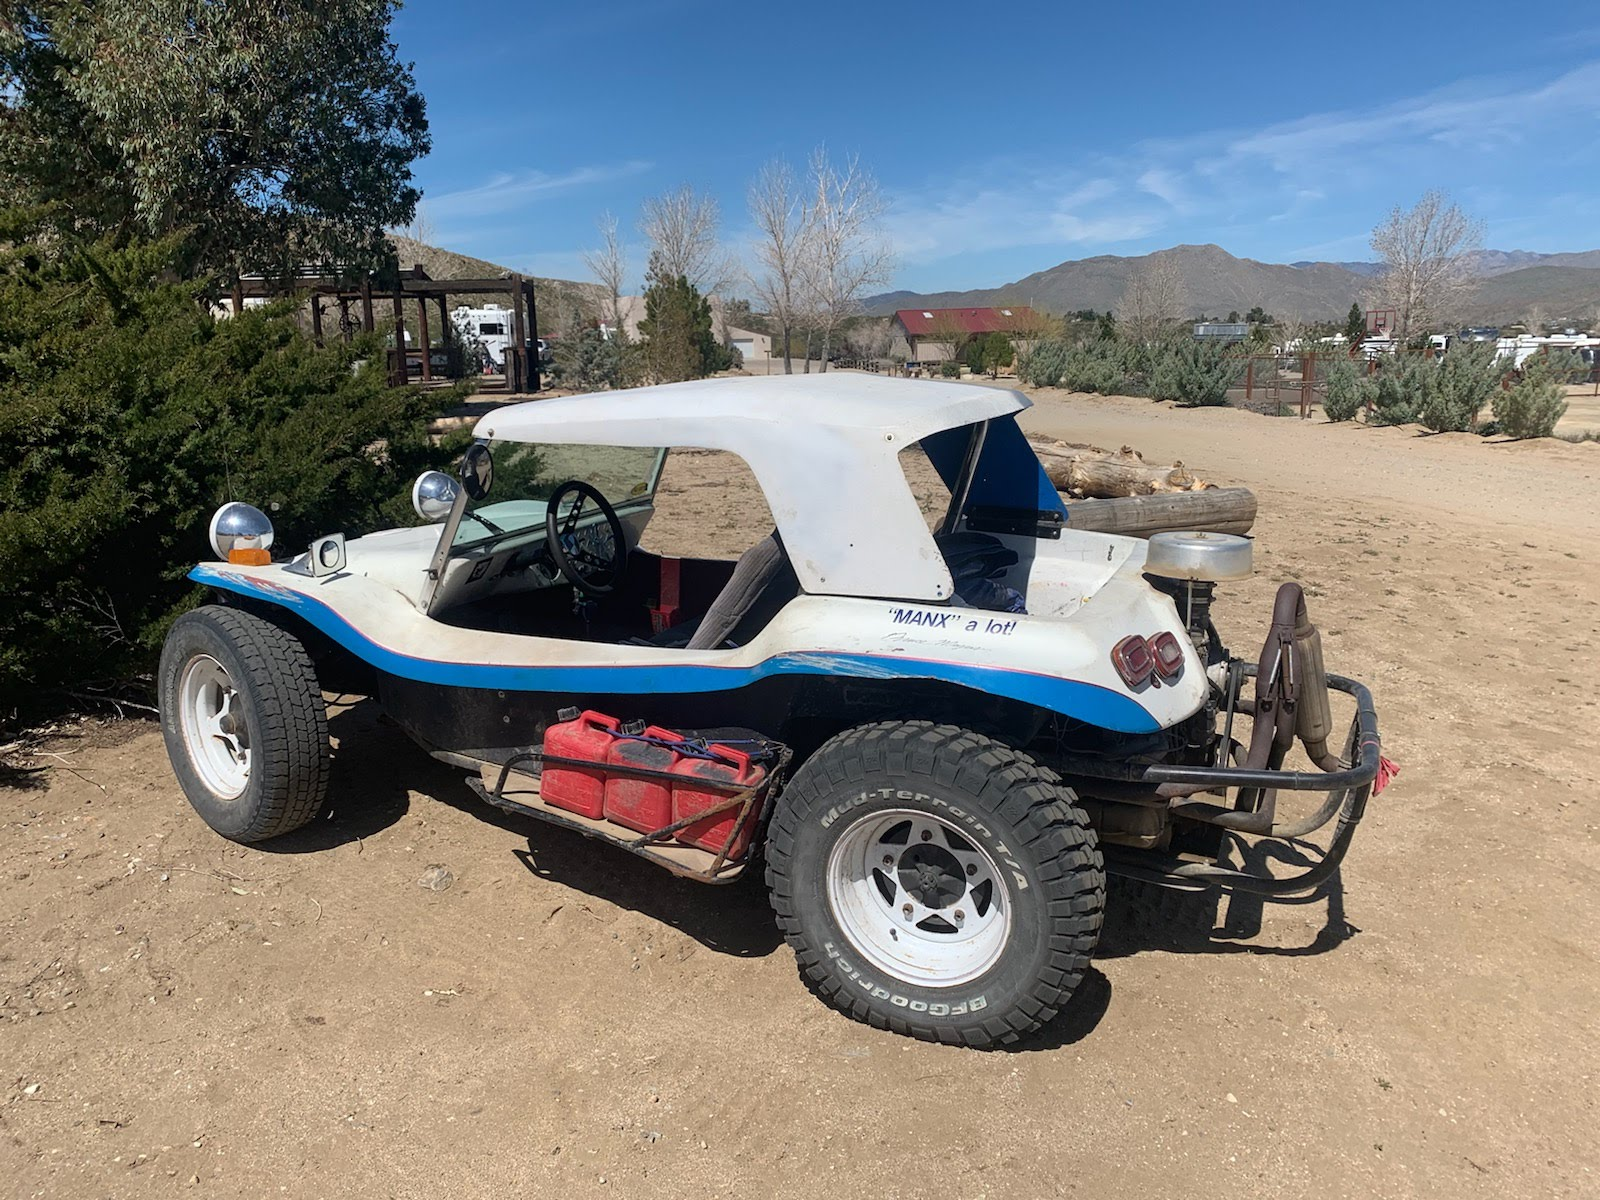 Beat Up Dune Buggy in Southern California